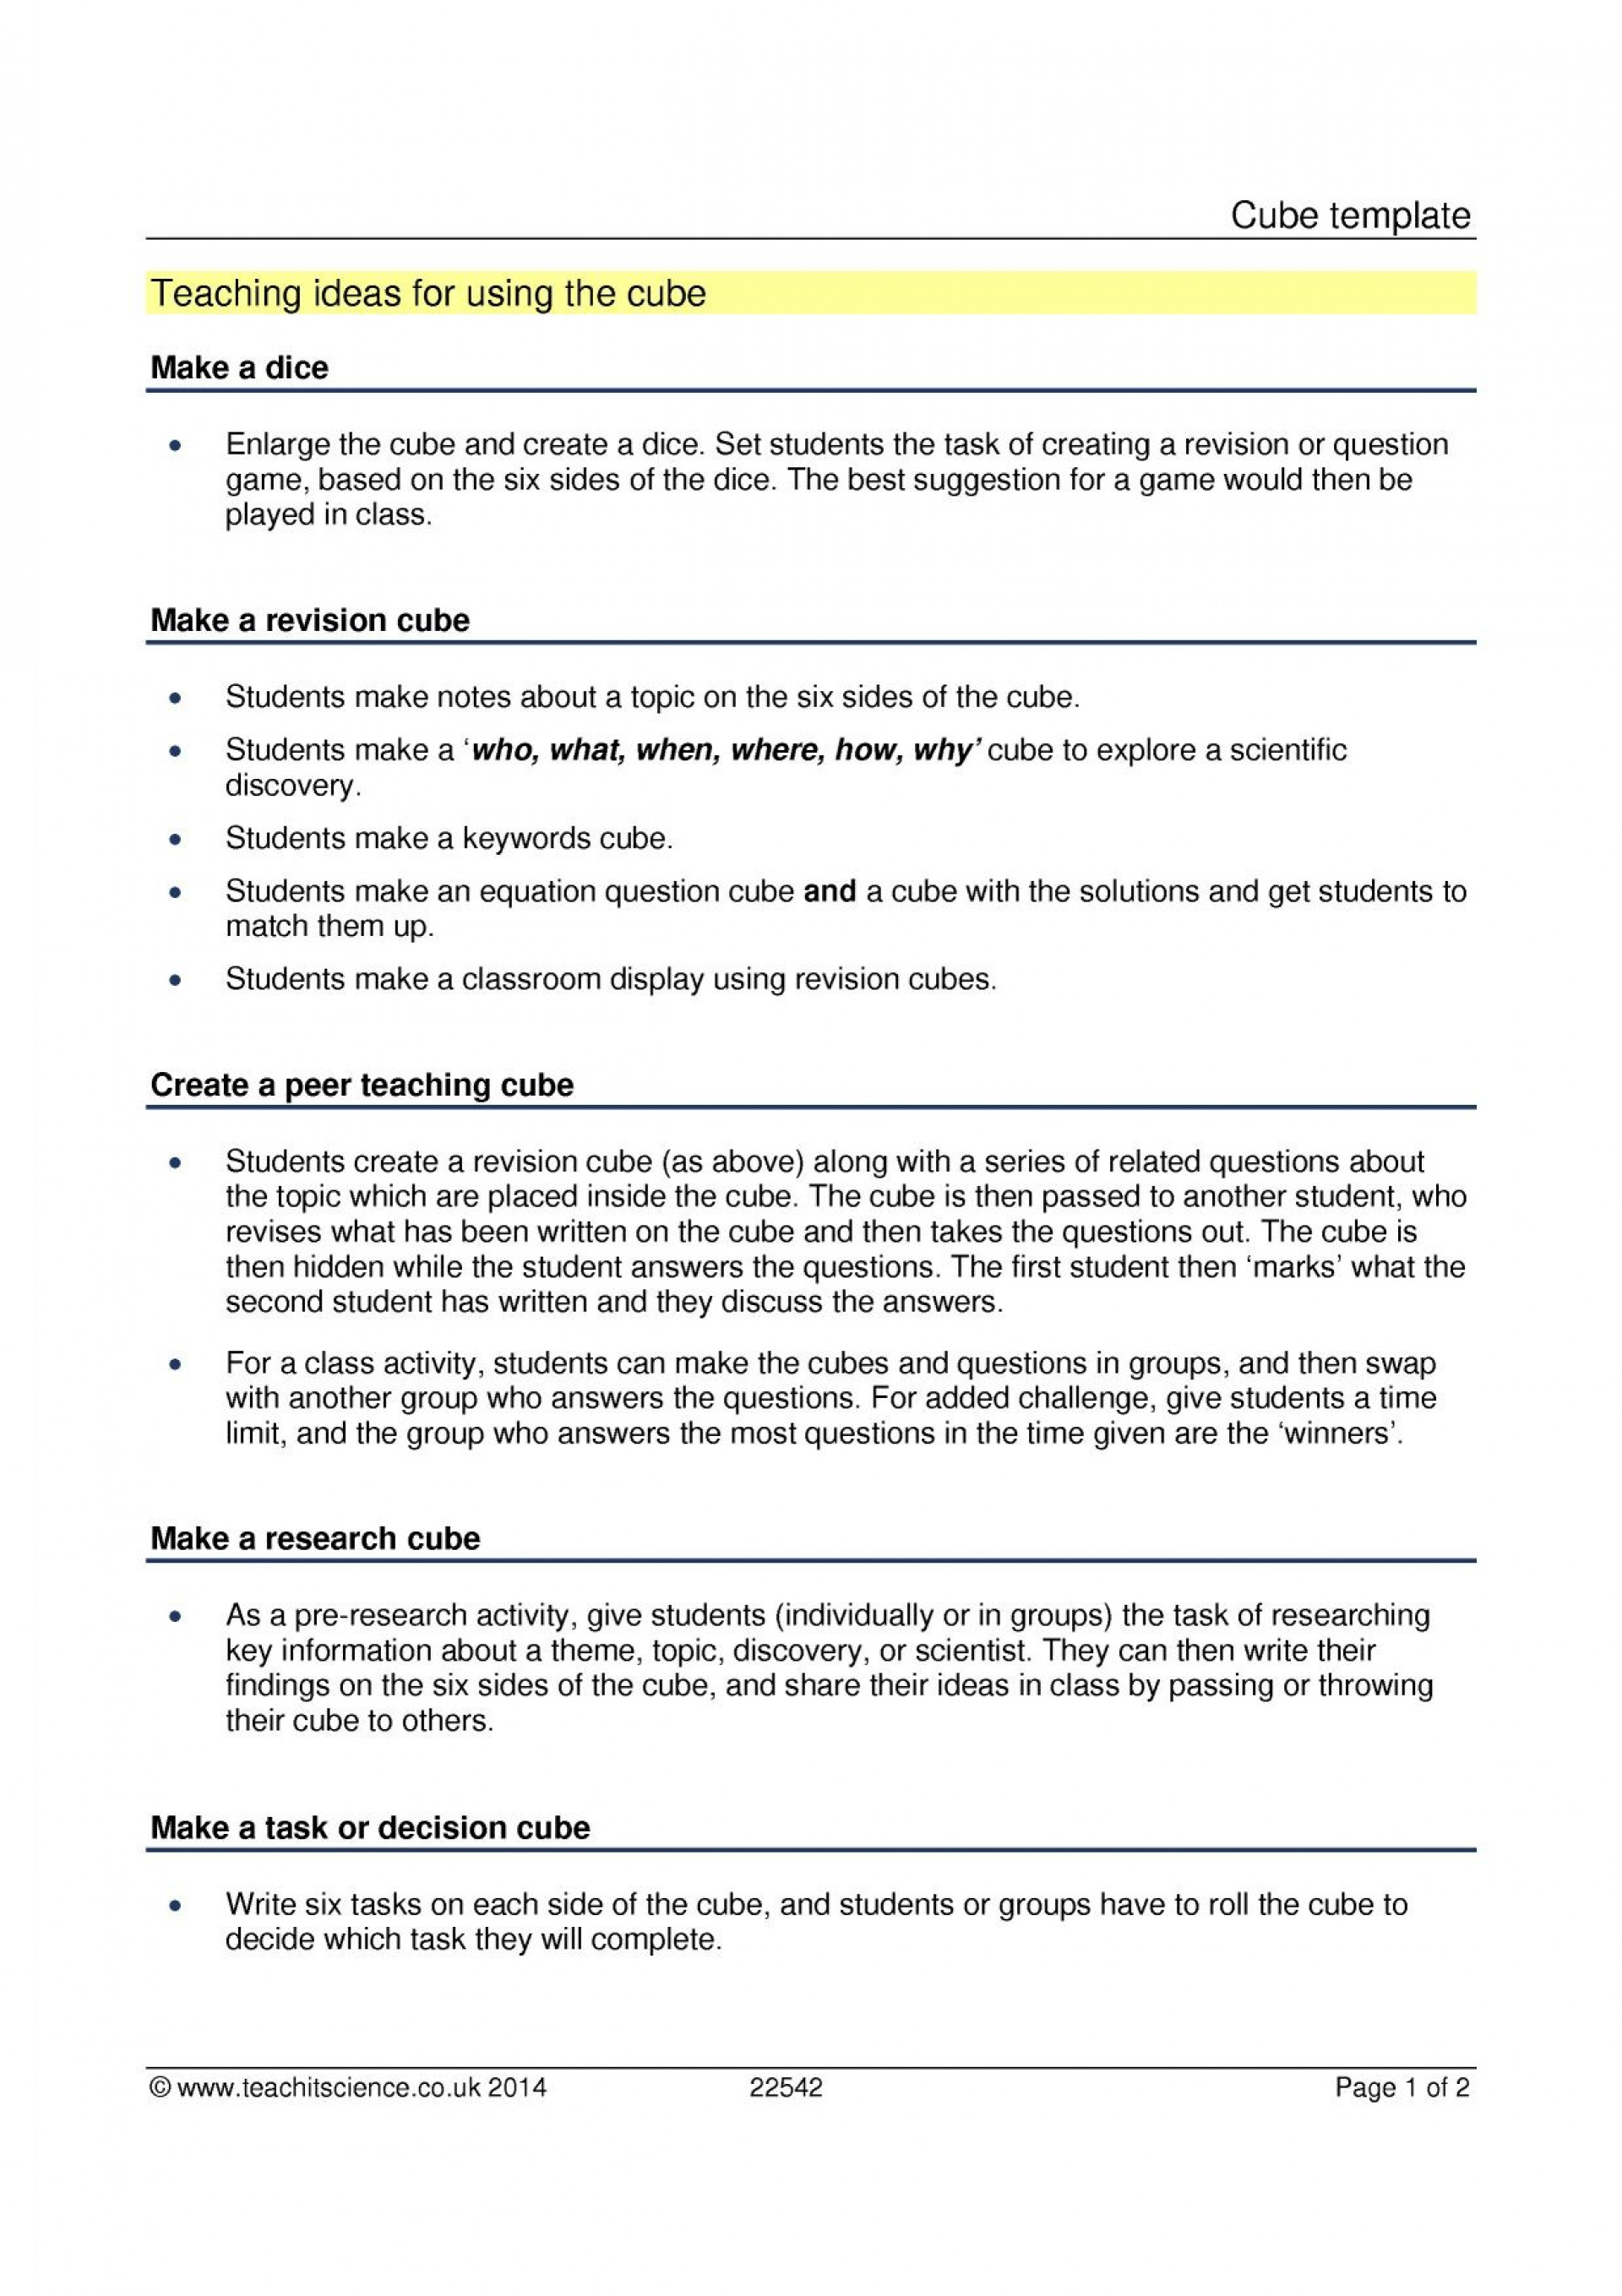 005 Essay Writing Jobs Online For Freelance Writers Essays Term Papers Uk X India Archaicawful In Kenya 1920